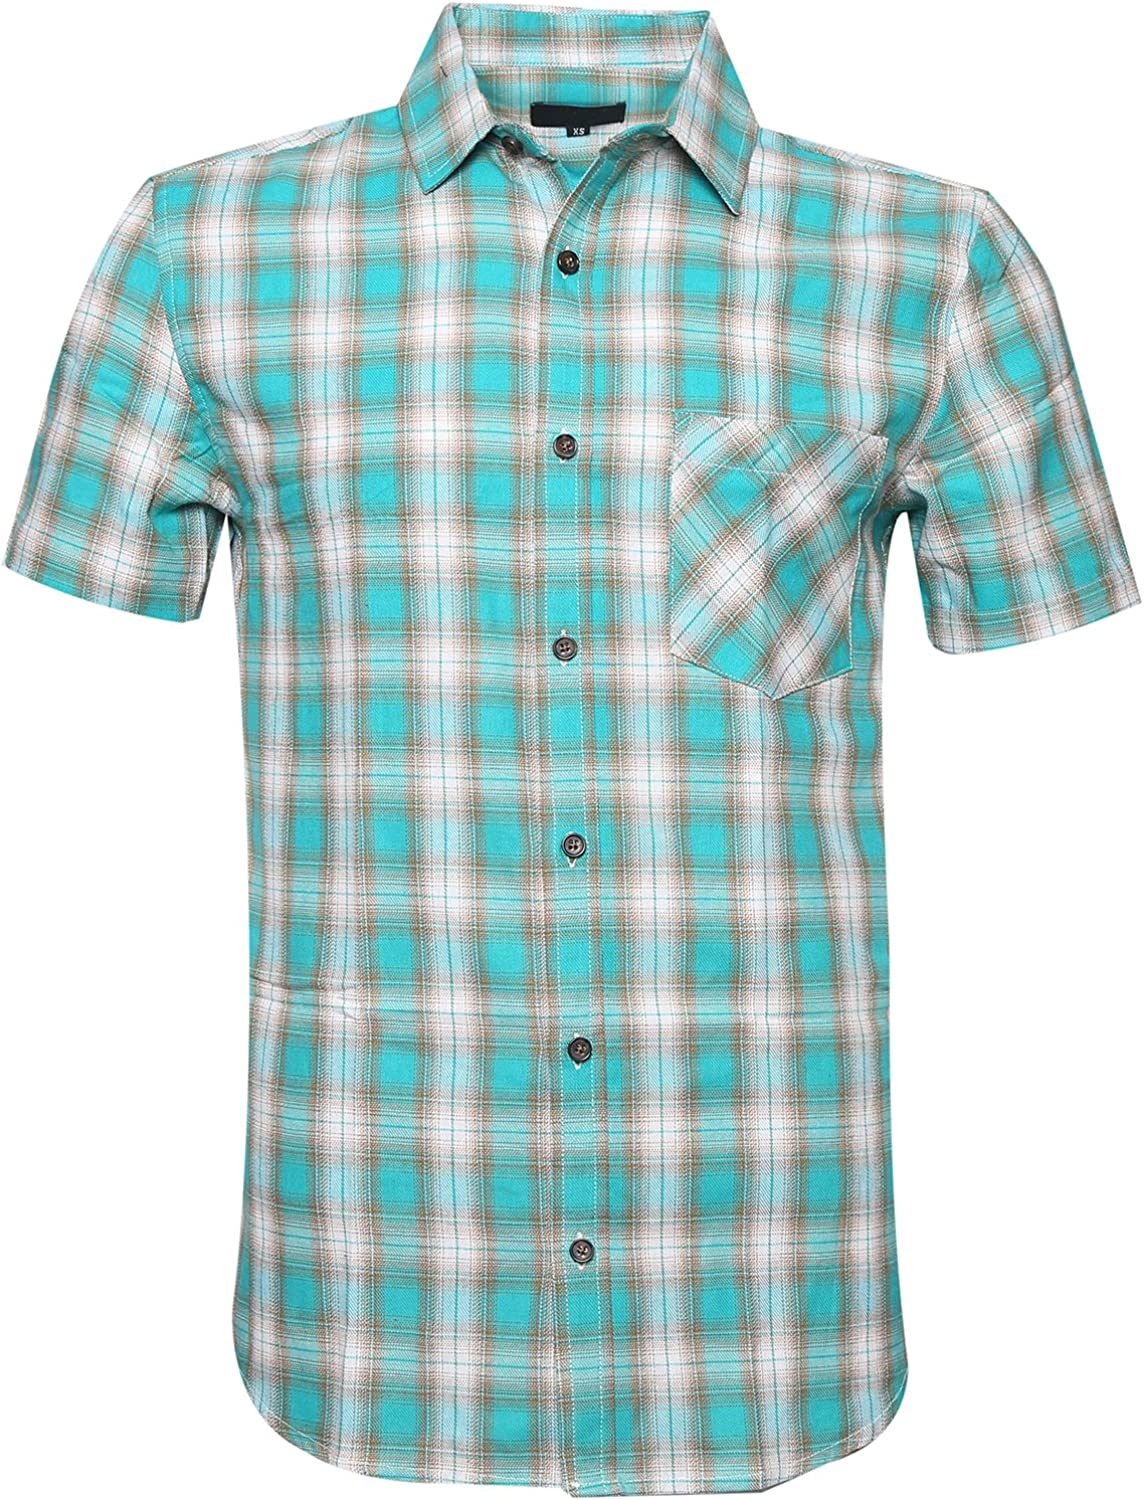 ALTOGUSTO Men's Short Sleeve Max 44% OFF Button Max 85% OFF Plaid Colourful Work Down Ca